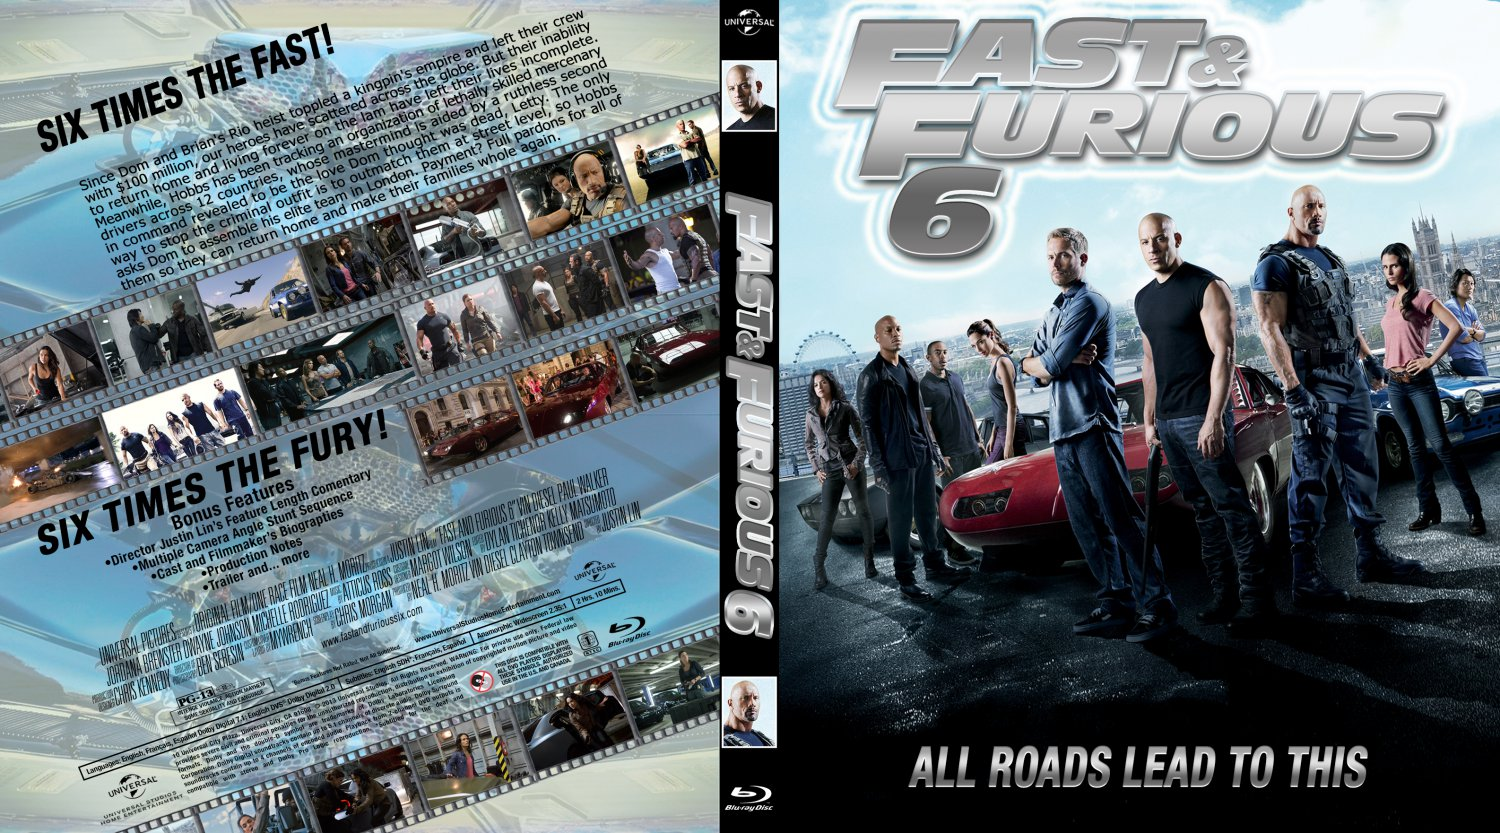 All fast and furious series torrent download In original order 2 Fast 2 Furious (2003) 1080p BluRay x264 -.4GB - yify - BleachER 2 Fast 2 Furious (2003) 1080p BluRay x264 Dual Audio English